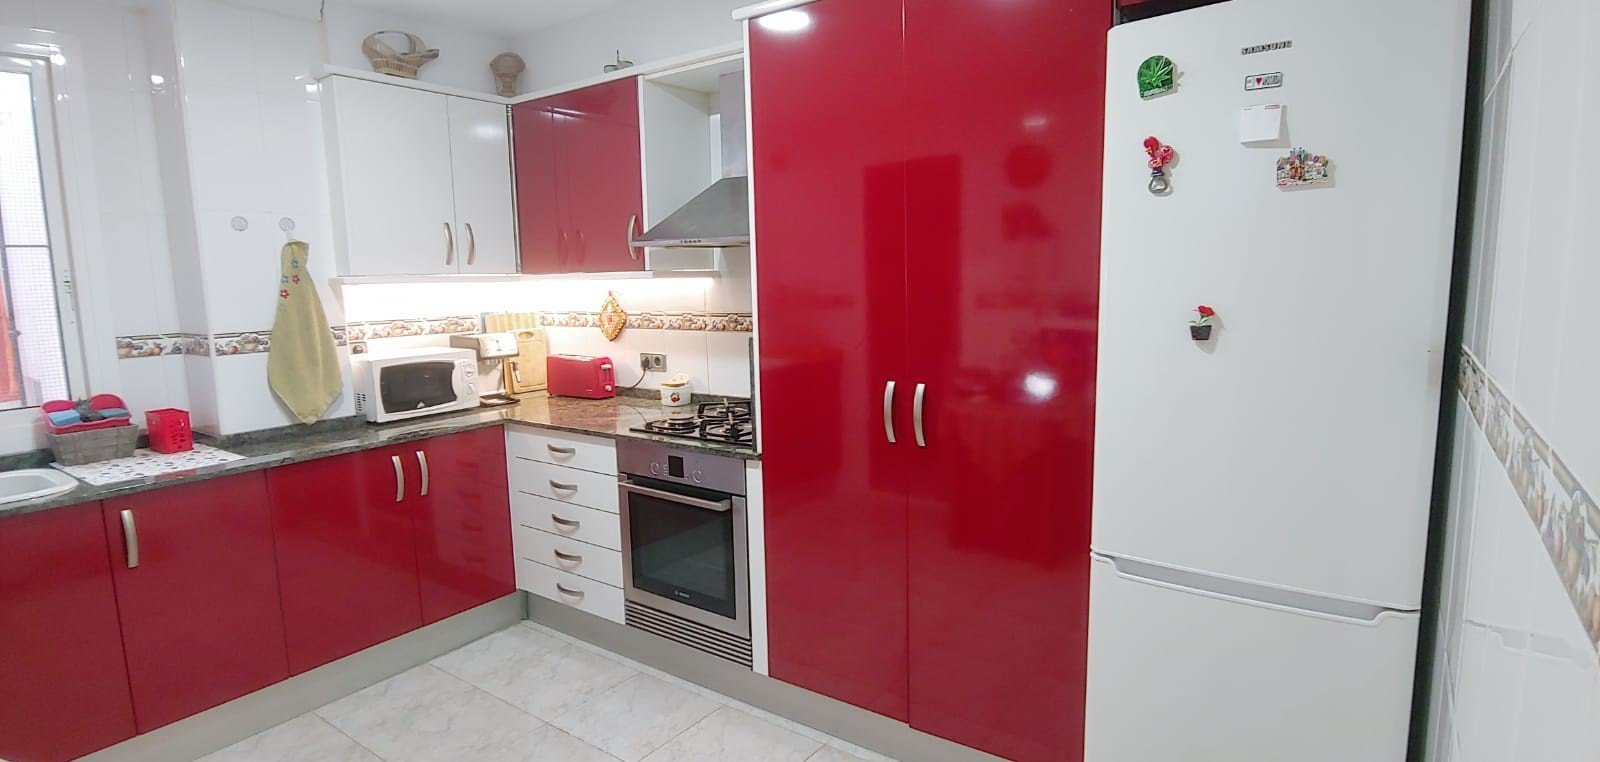 Town flats in DENIA Apartment for sale in Denia near the port and beach